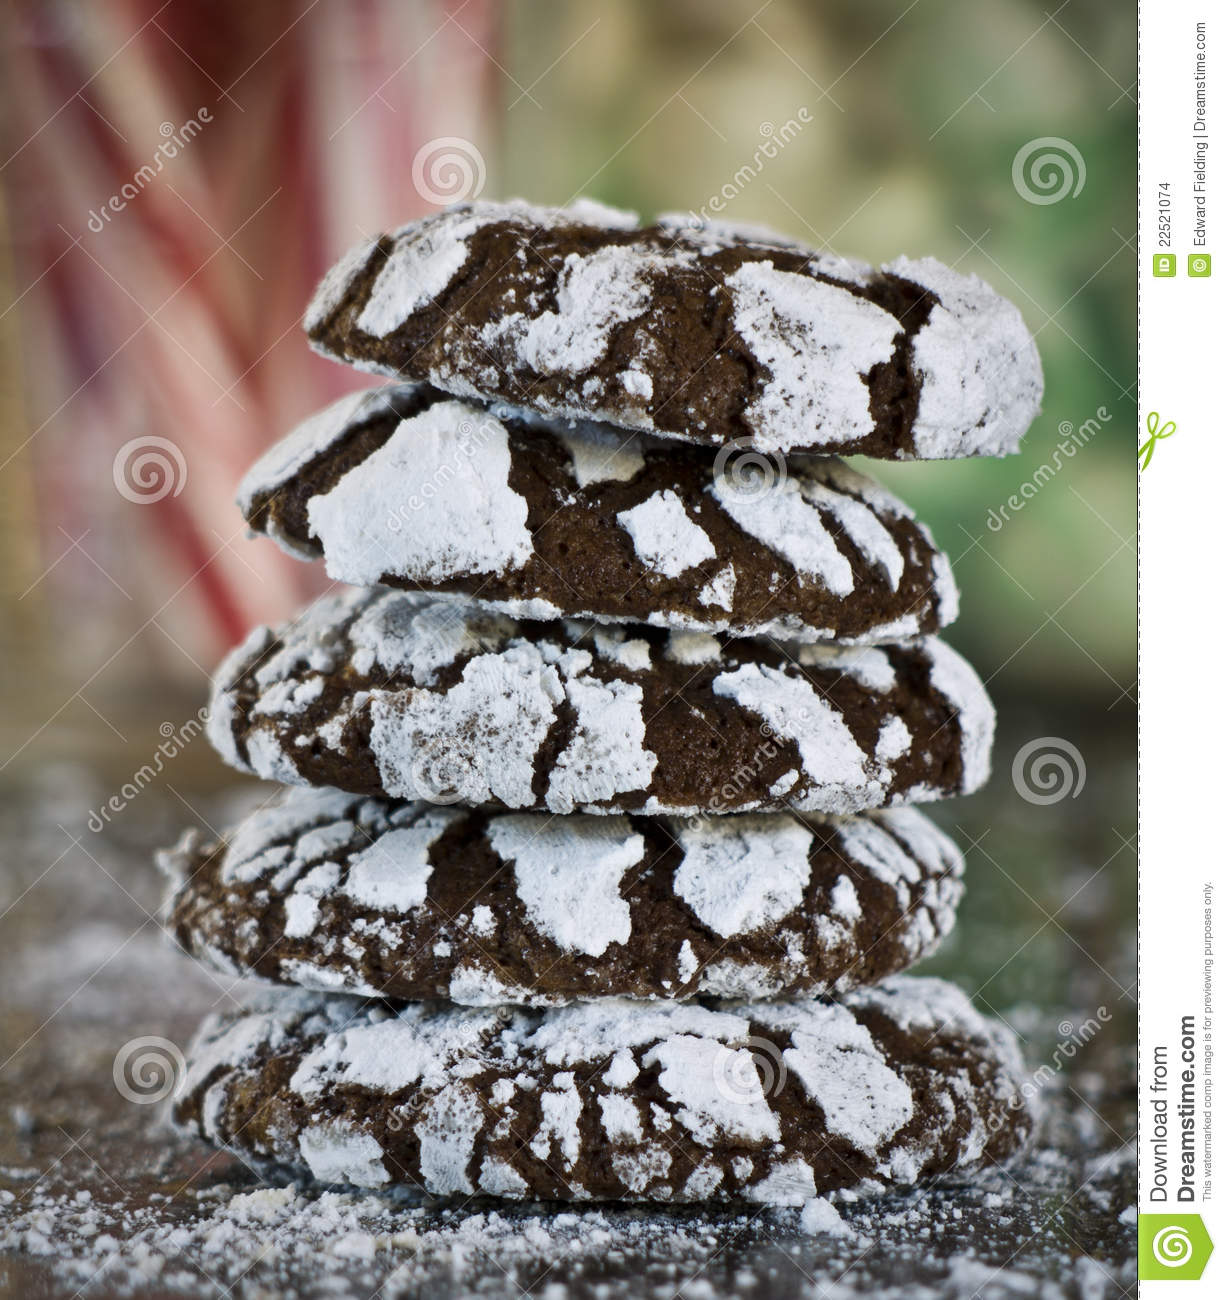 Chocolate Crackle Cookies Stock Images - Image: 22521074